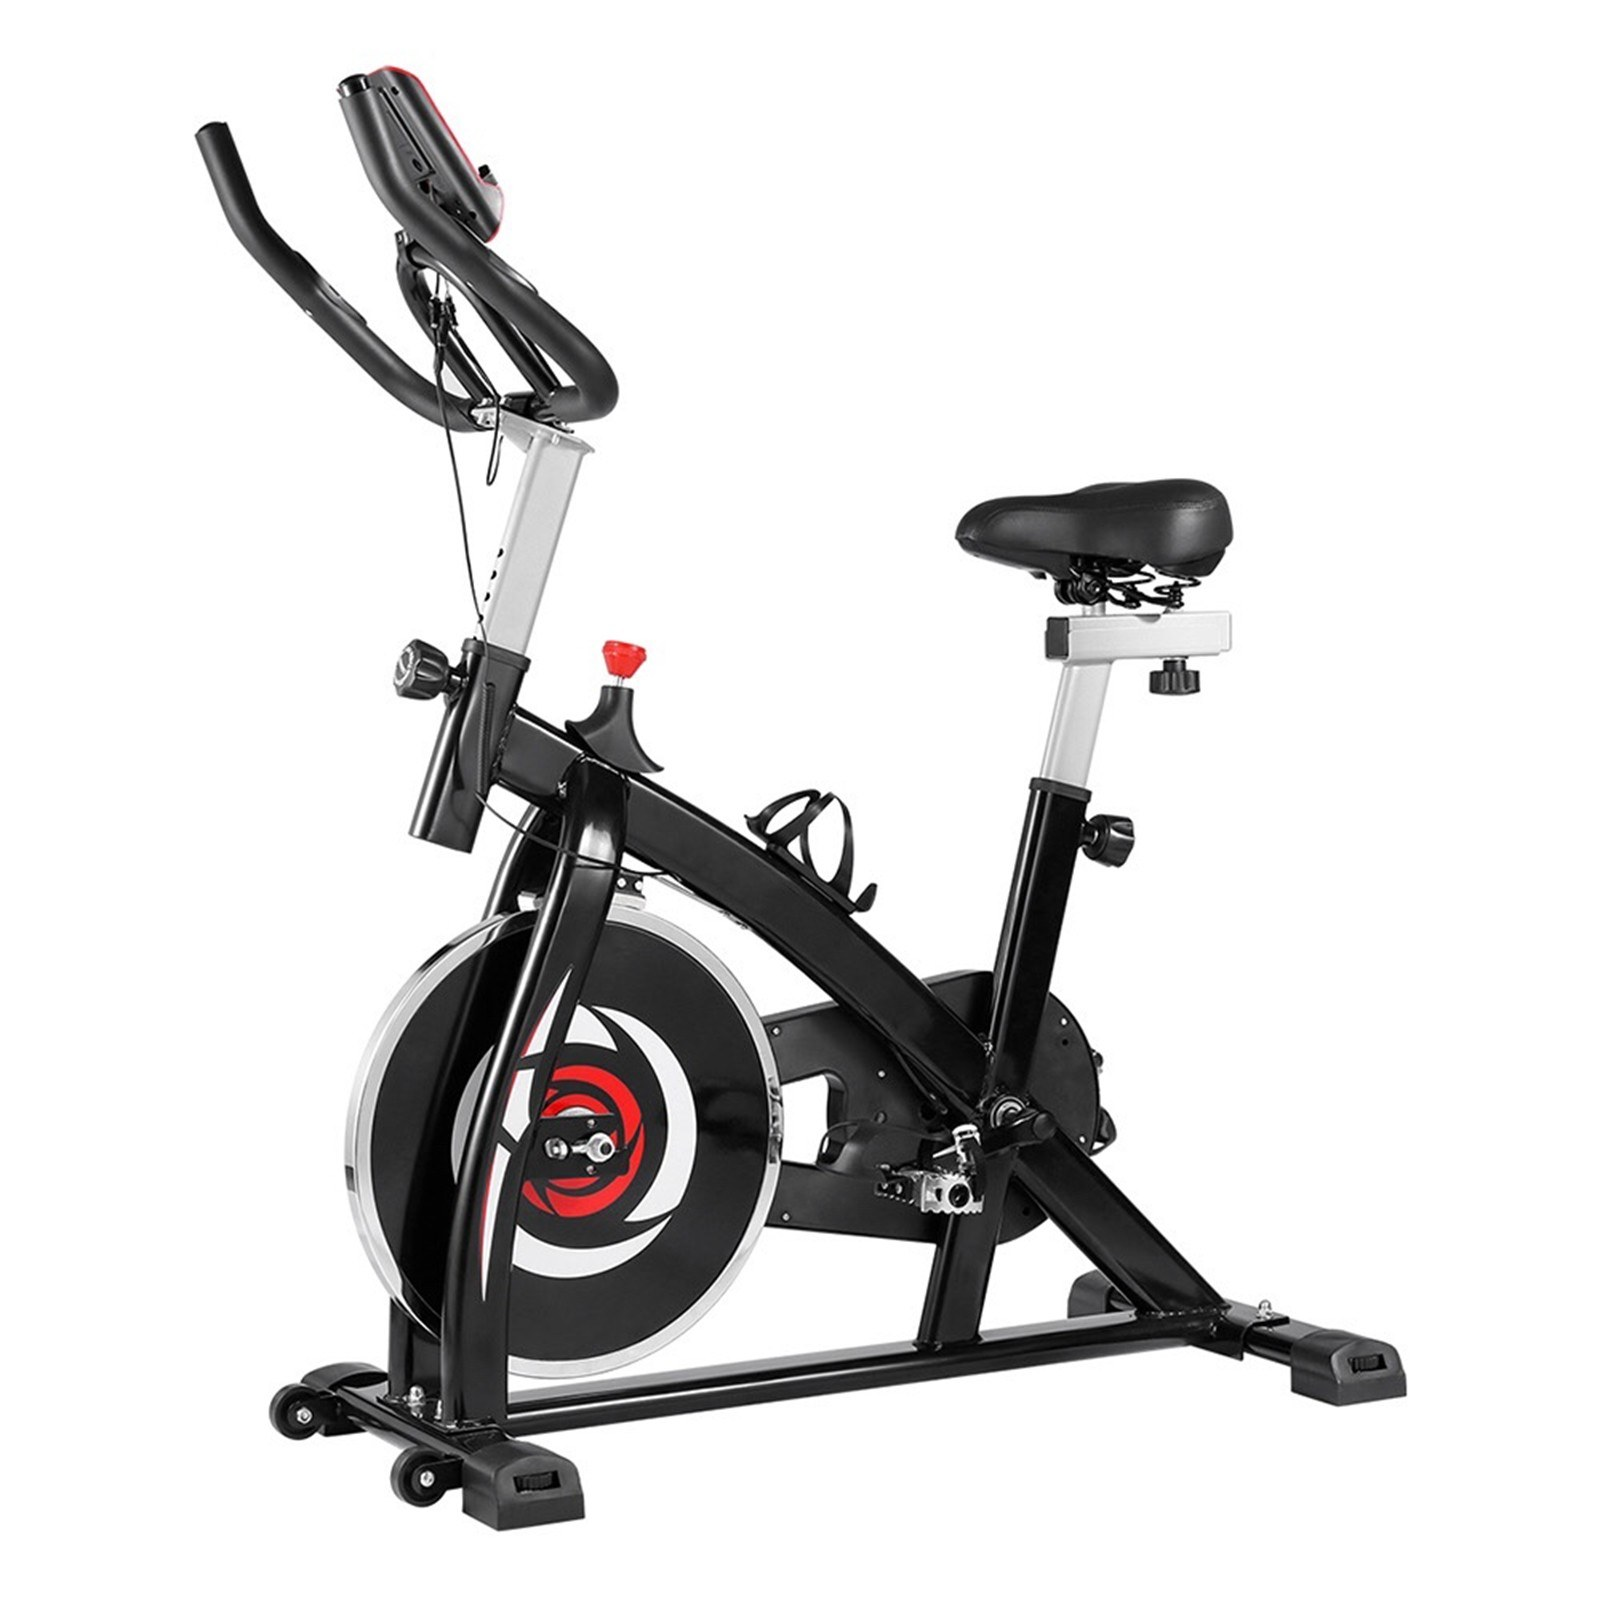 Tomtop - [EU Warehouse] 40% OFF YS-S05 Indoor Cycling Stationary Exercise Bike, $188.99